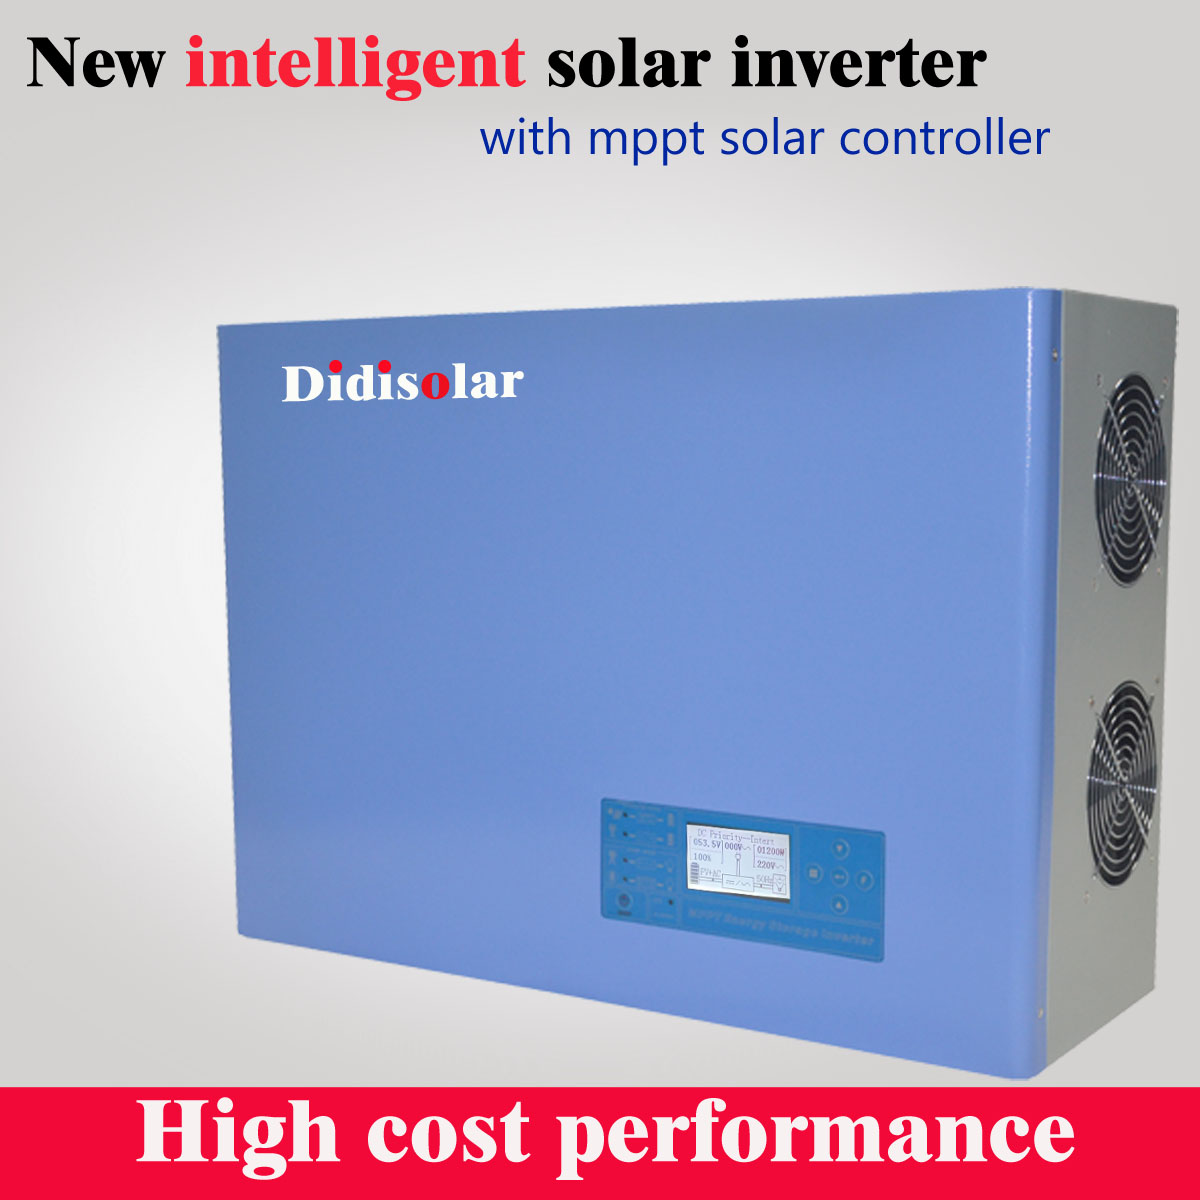 How does the Didisolar solar inverter query the operation information?